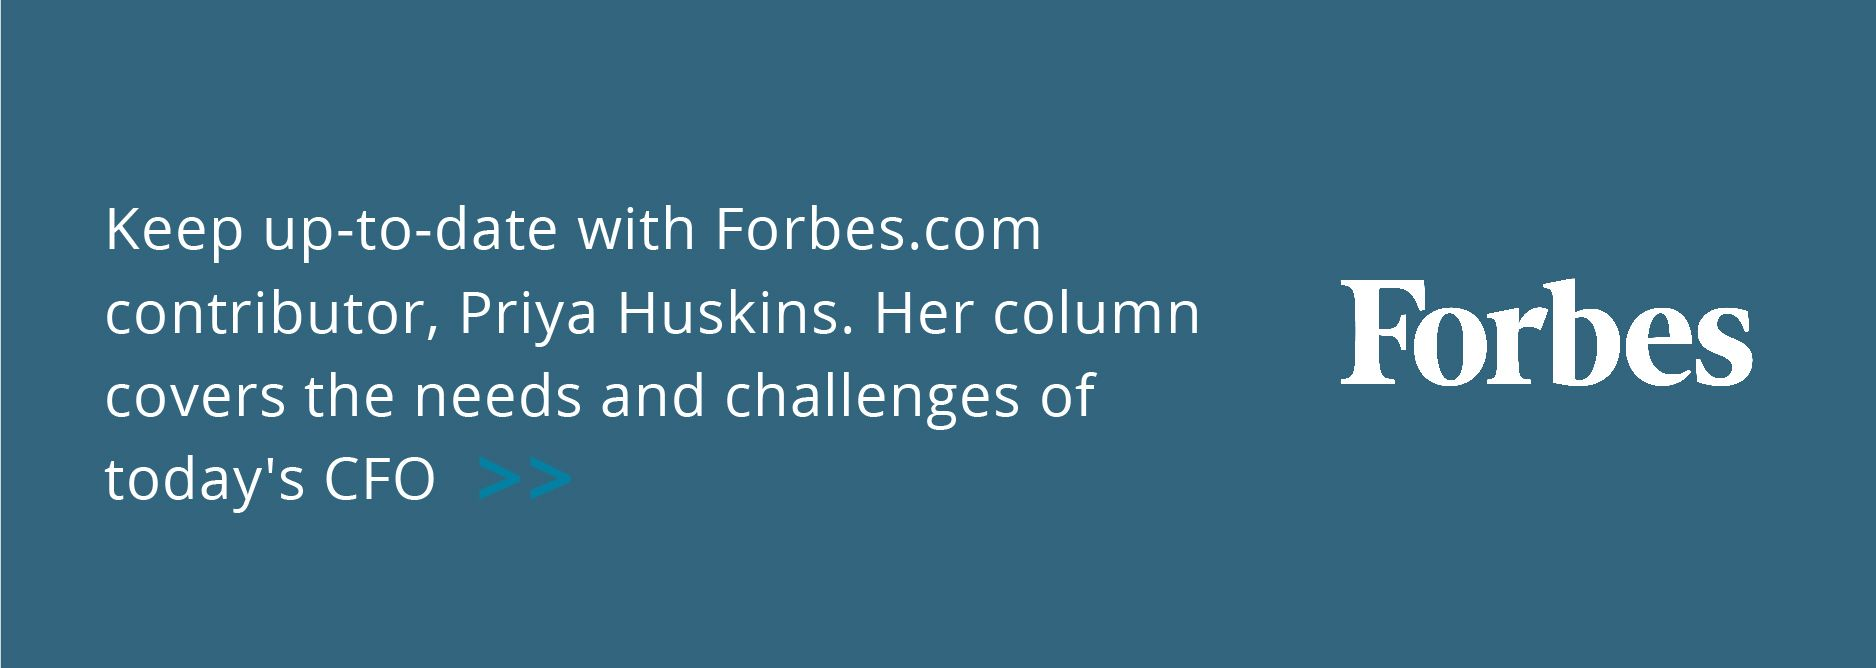 Keep up-to-date with Forbes.com contributor, Priya Huskins. Her column covers the needs and challenges of today's CFO.